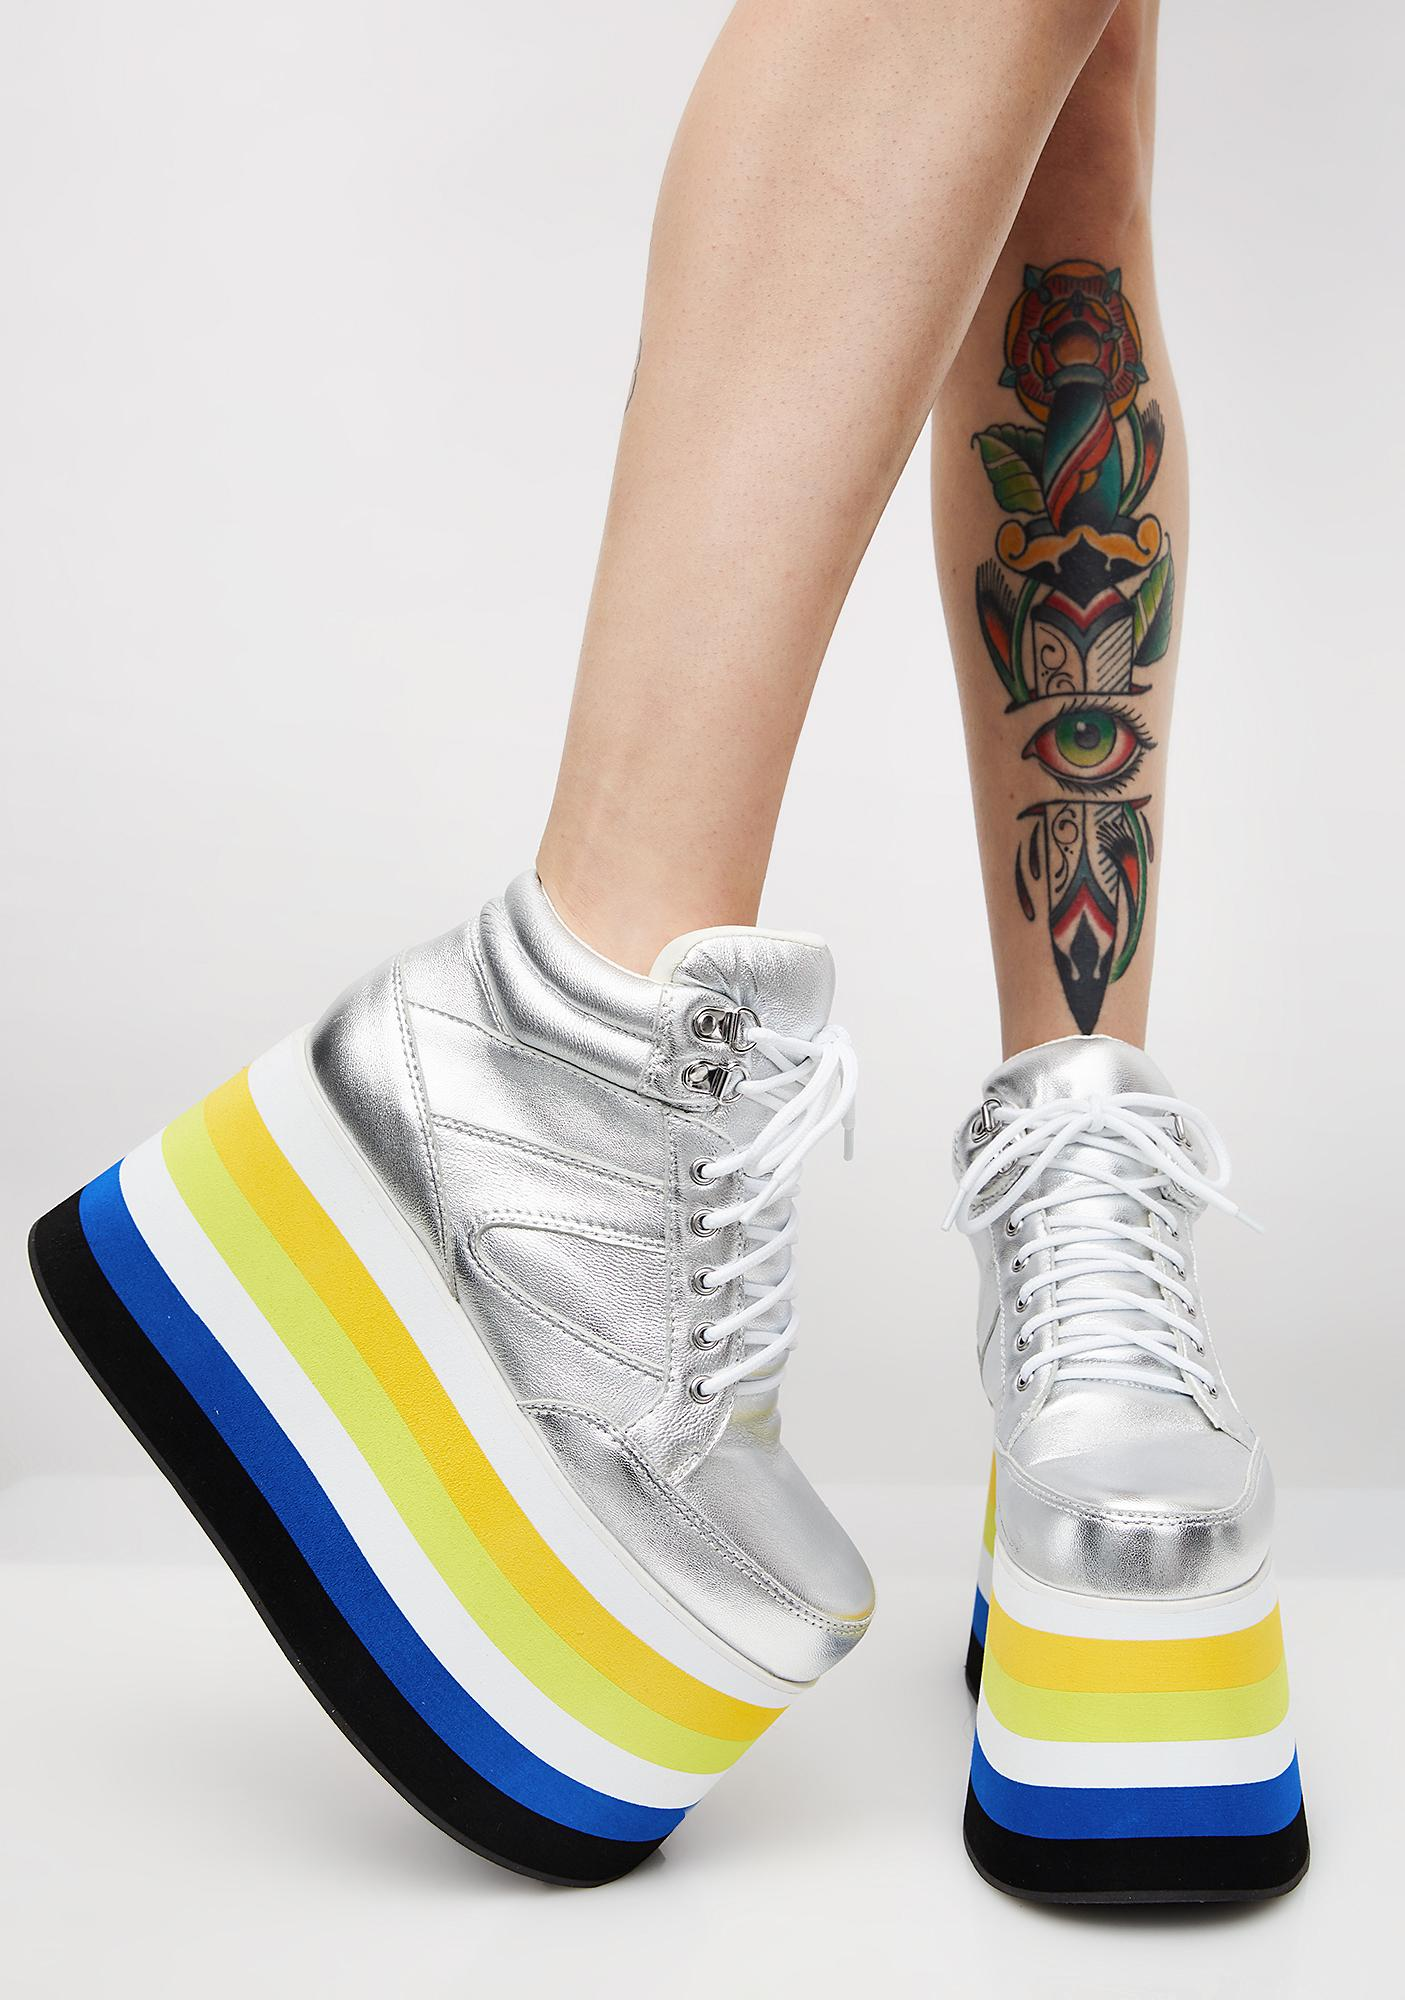 Shellys London Dema Platform Sneakers